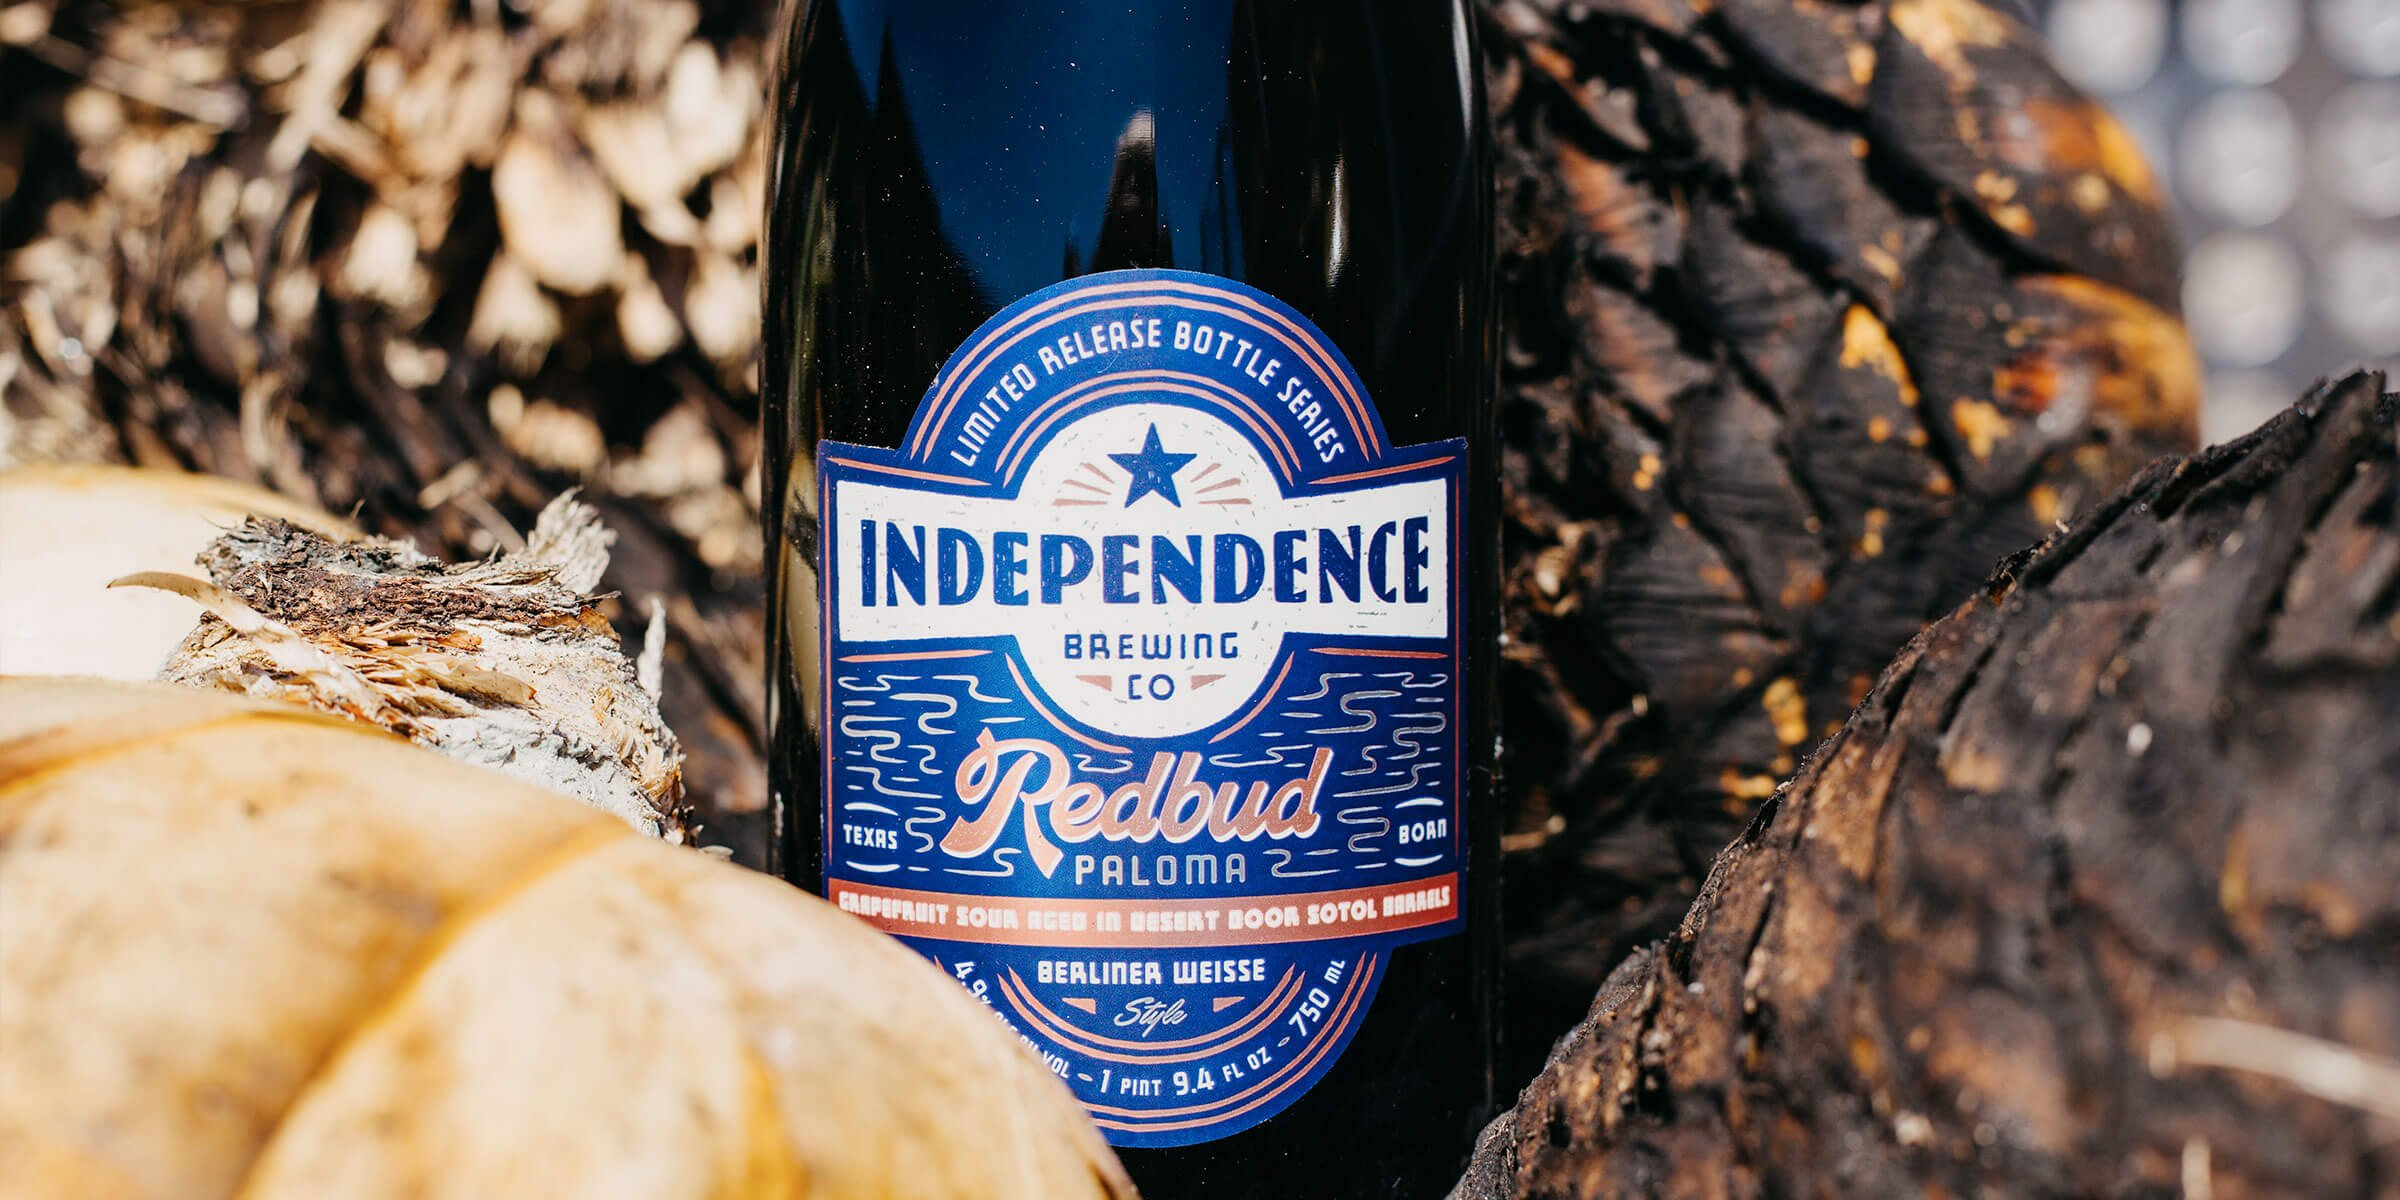 Desert Door, in collaboration with fellow Texas brand Independence Brewing Co., will release Redbud Paloma, a tart and lemony Berliner Weisse, on June 19th.